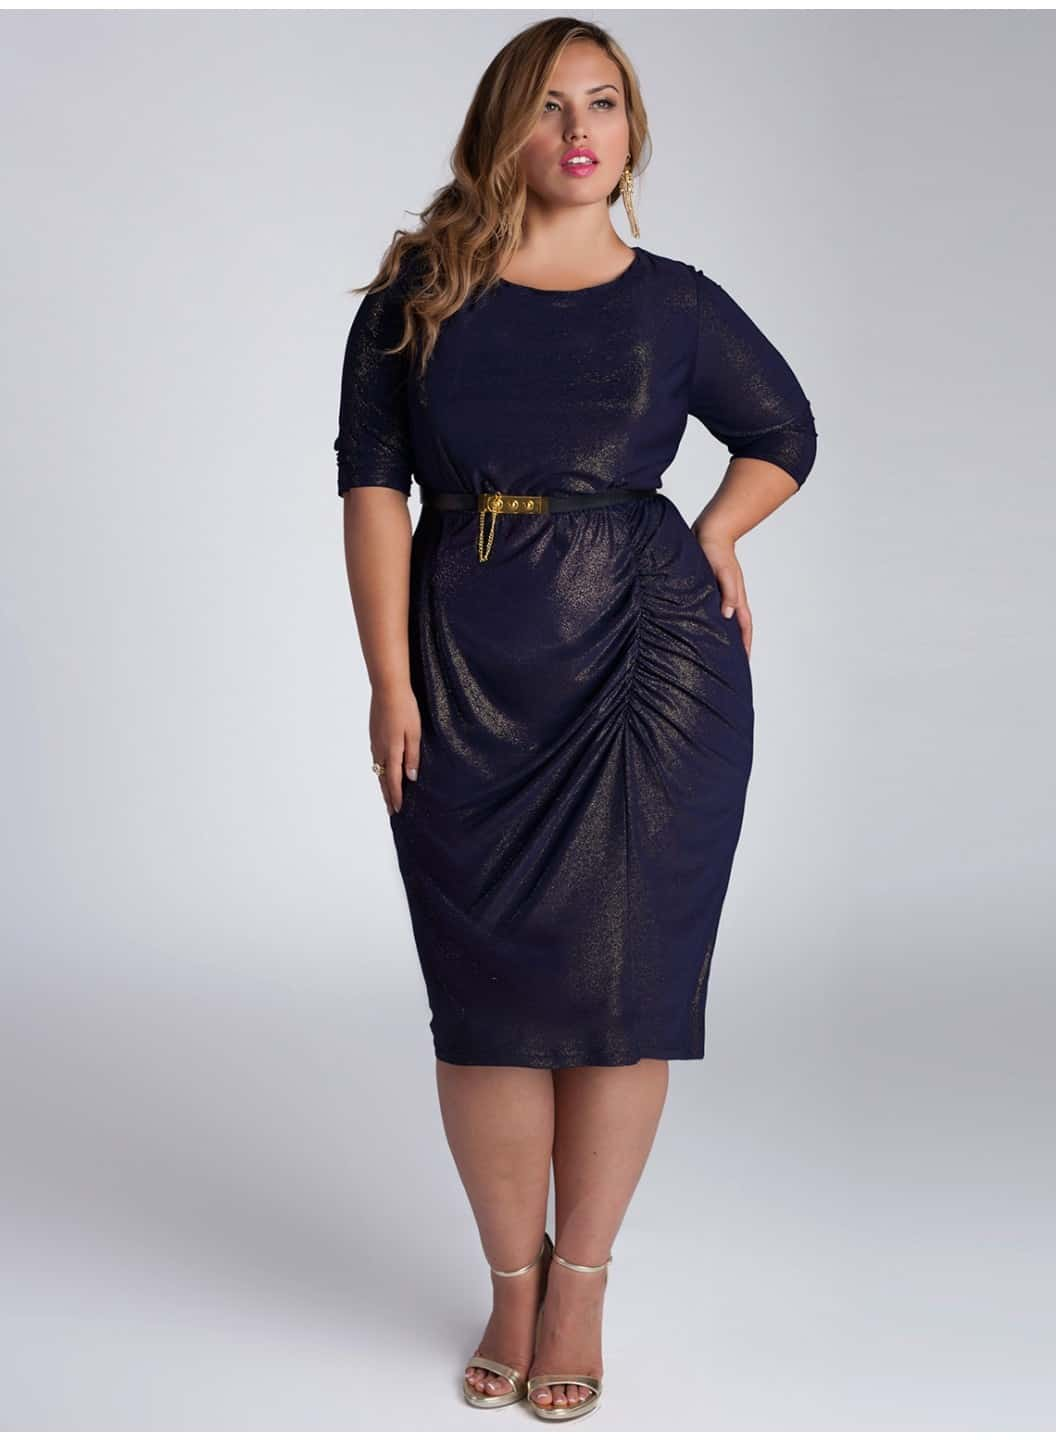 Women's-plus-size-cocktail-and-evening-dresses-2016-8